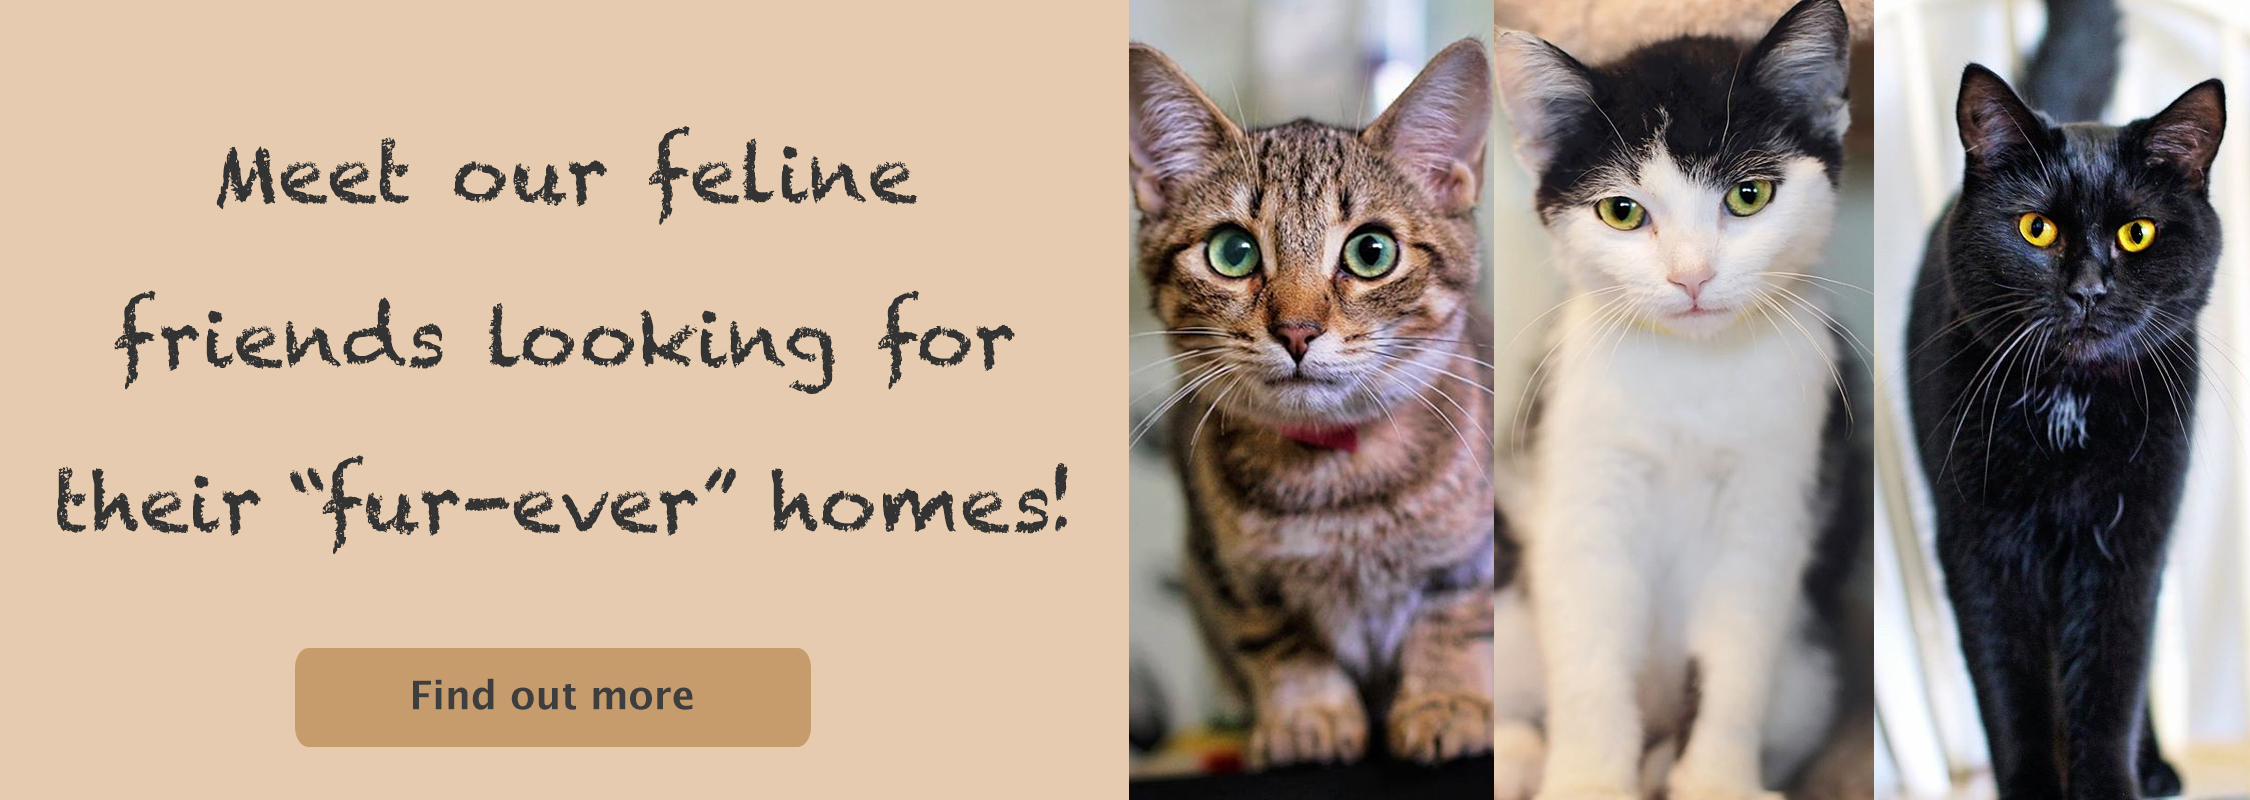 Looking for fur-ever homes!